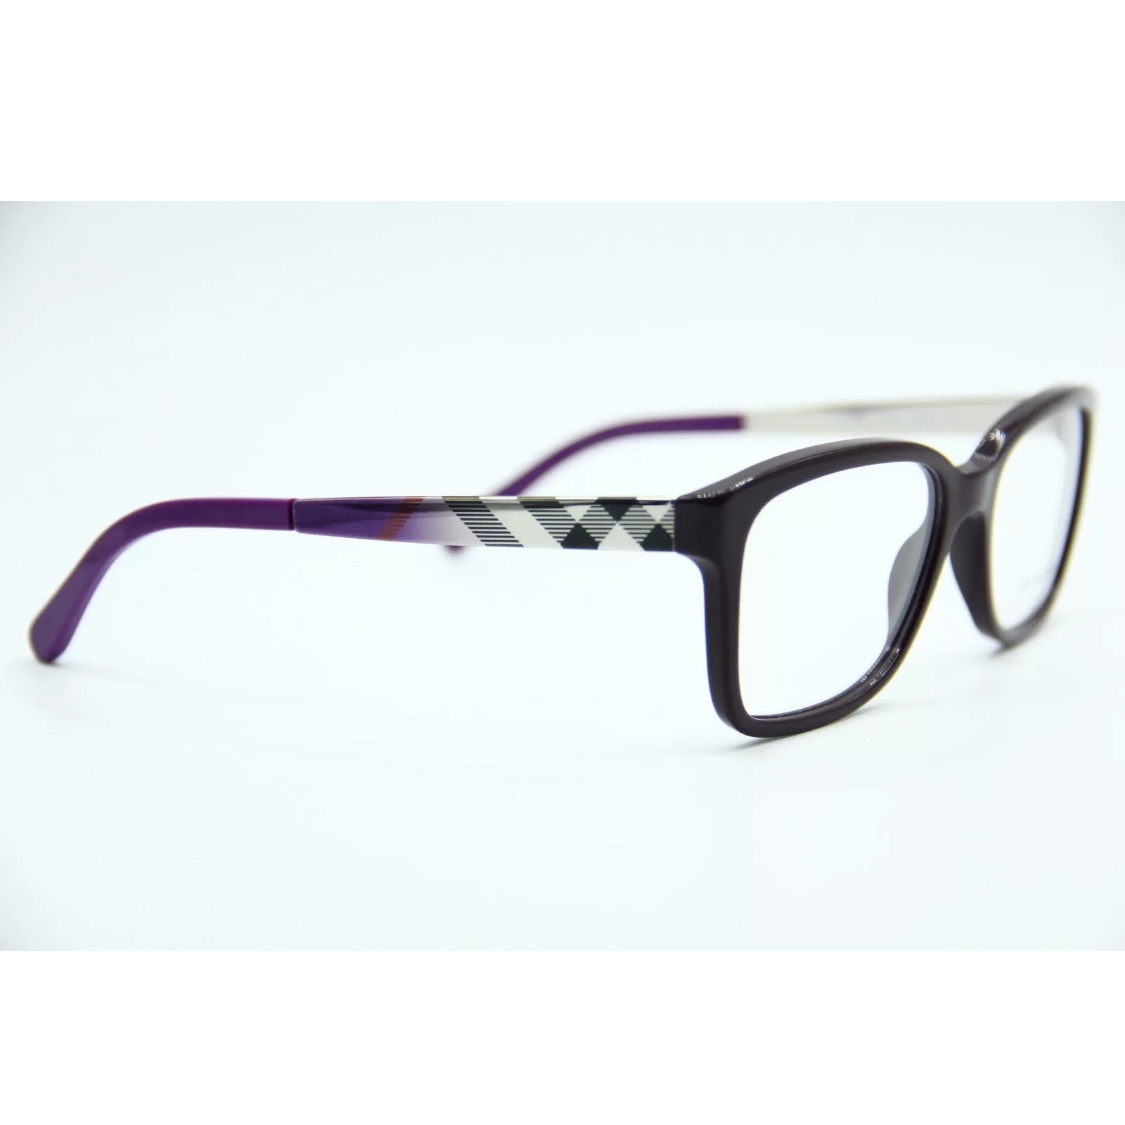 878c0f264974 NEW BURBERRY B 2143 3400 PURPLE AUTHENTIC EYEGLASSES... - Depop